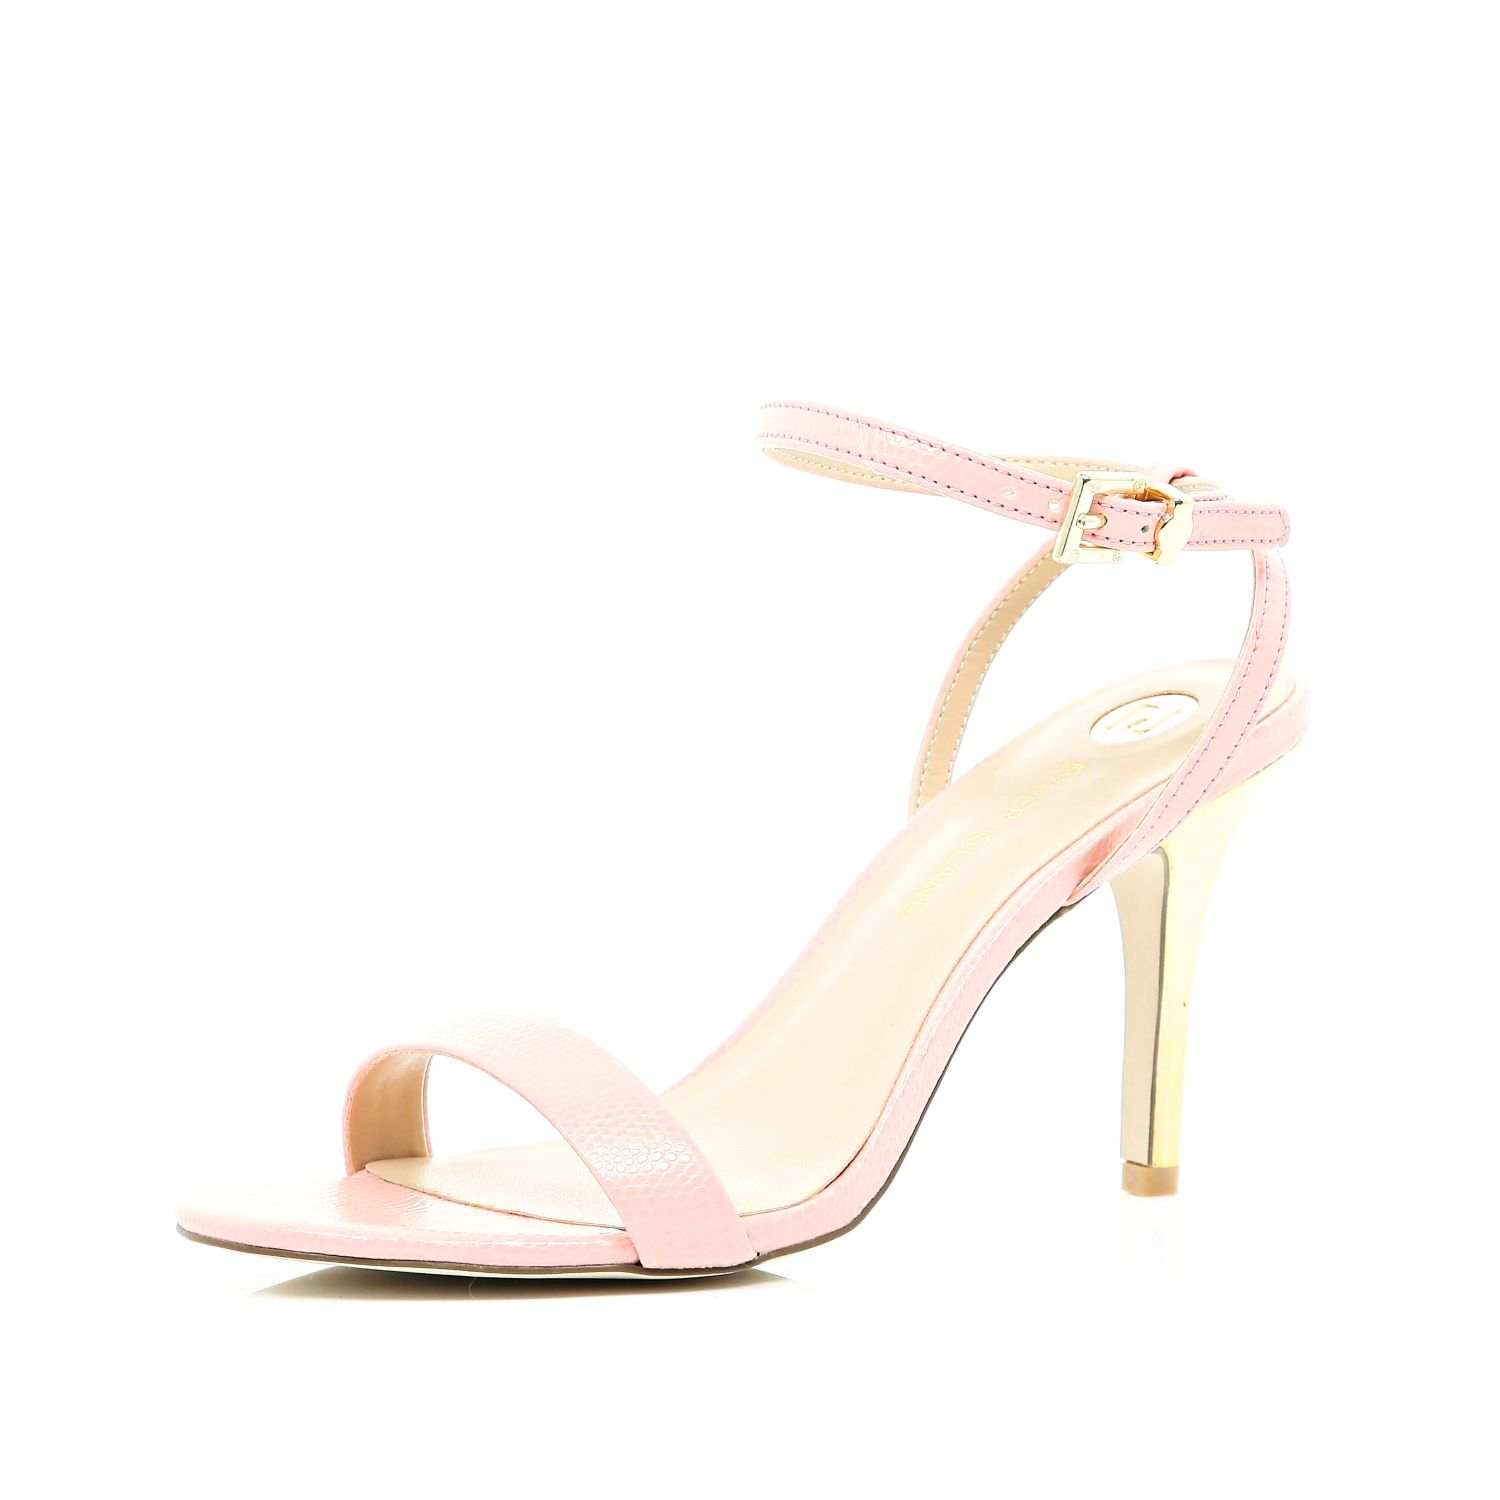 river island pale pink barely there mid heel sandals in